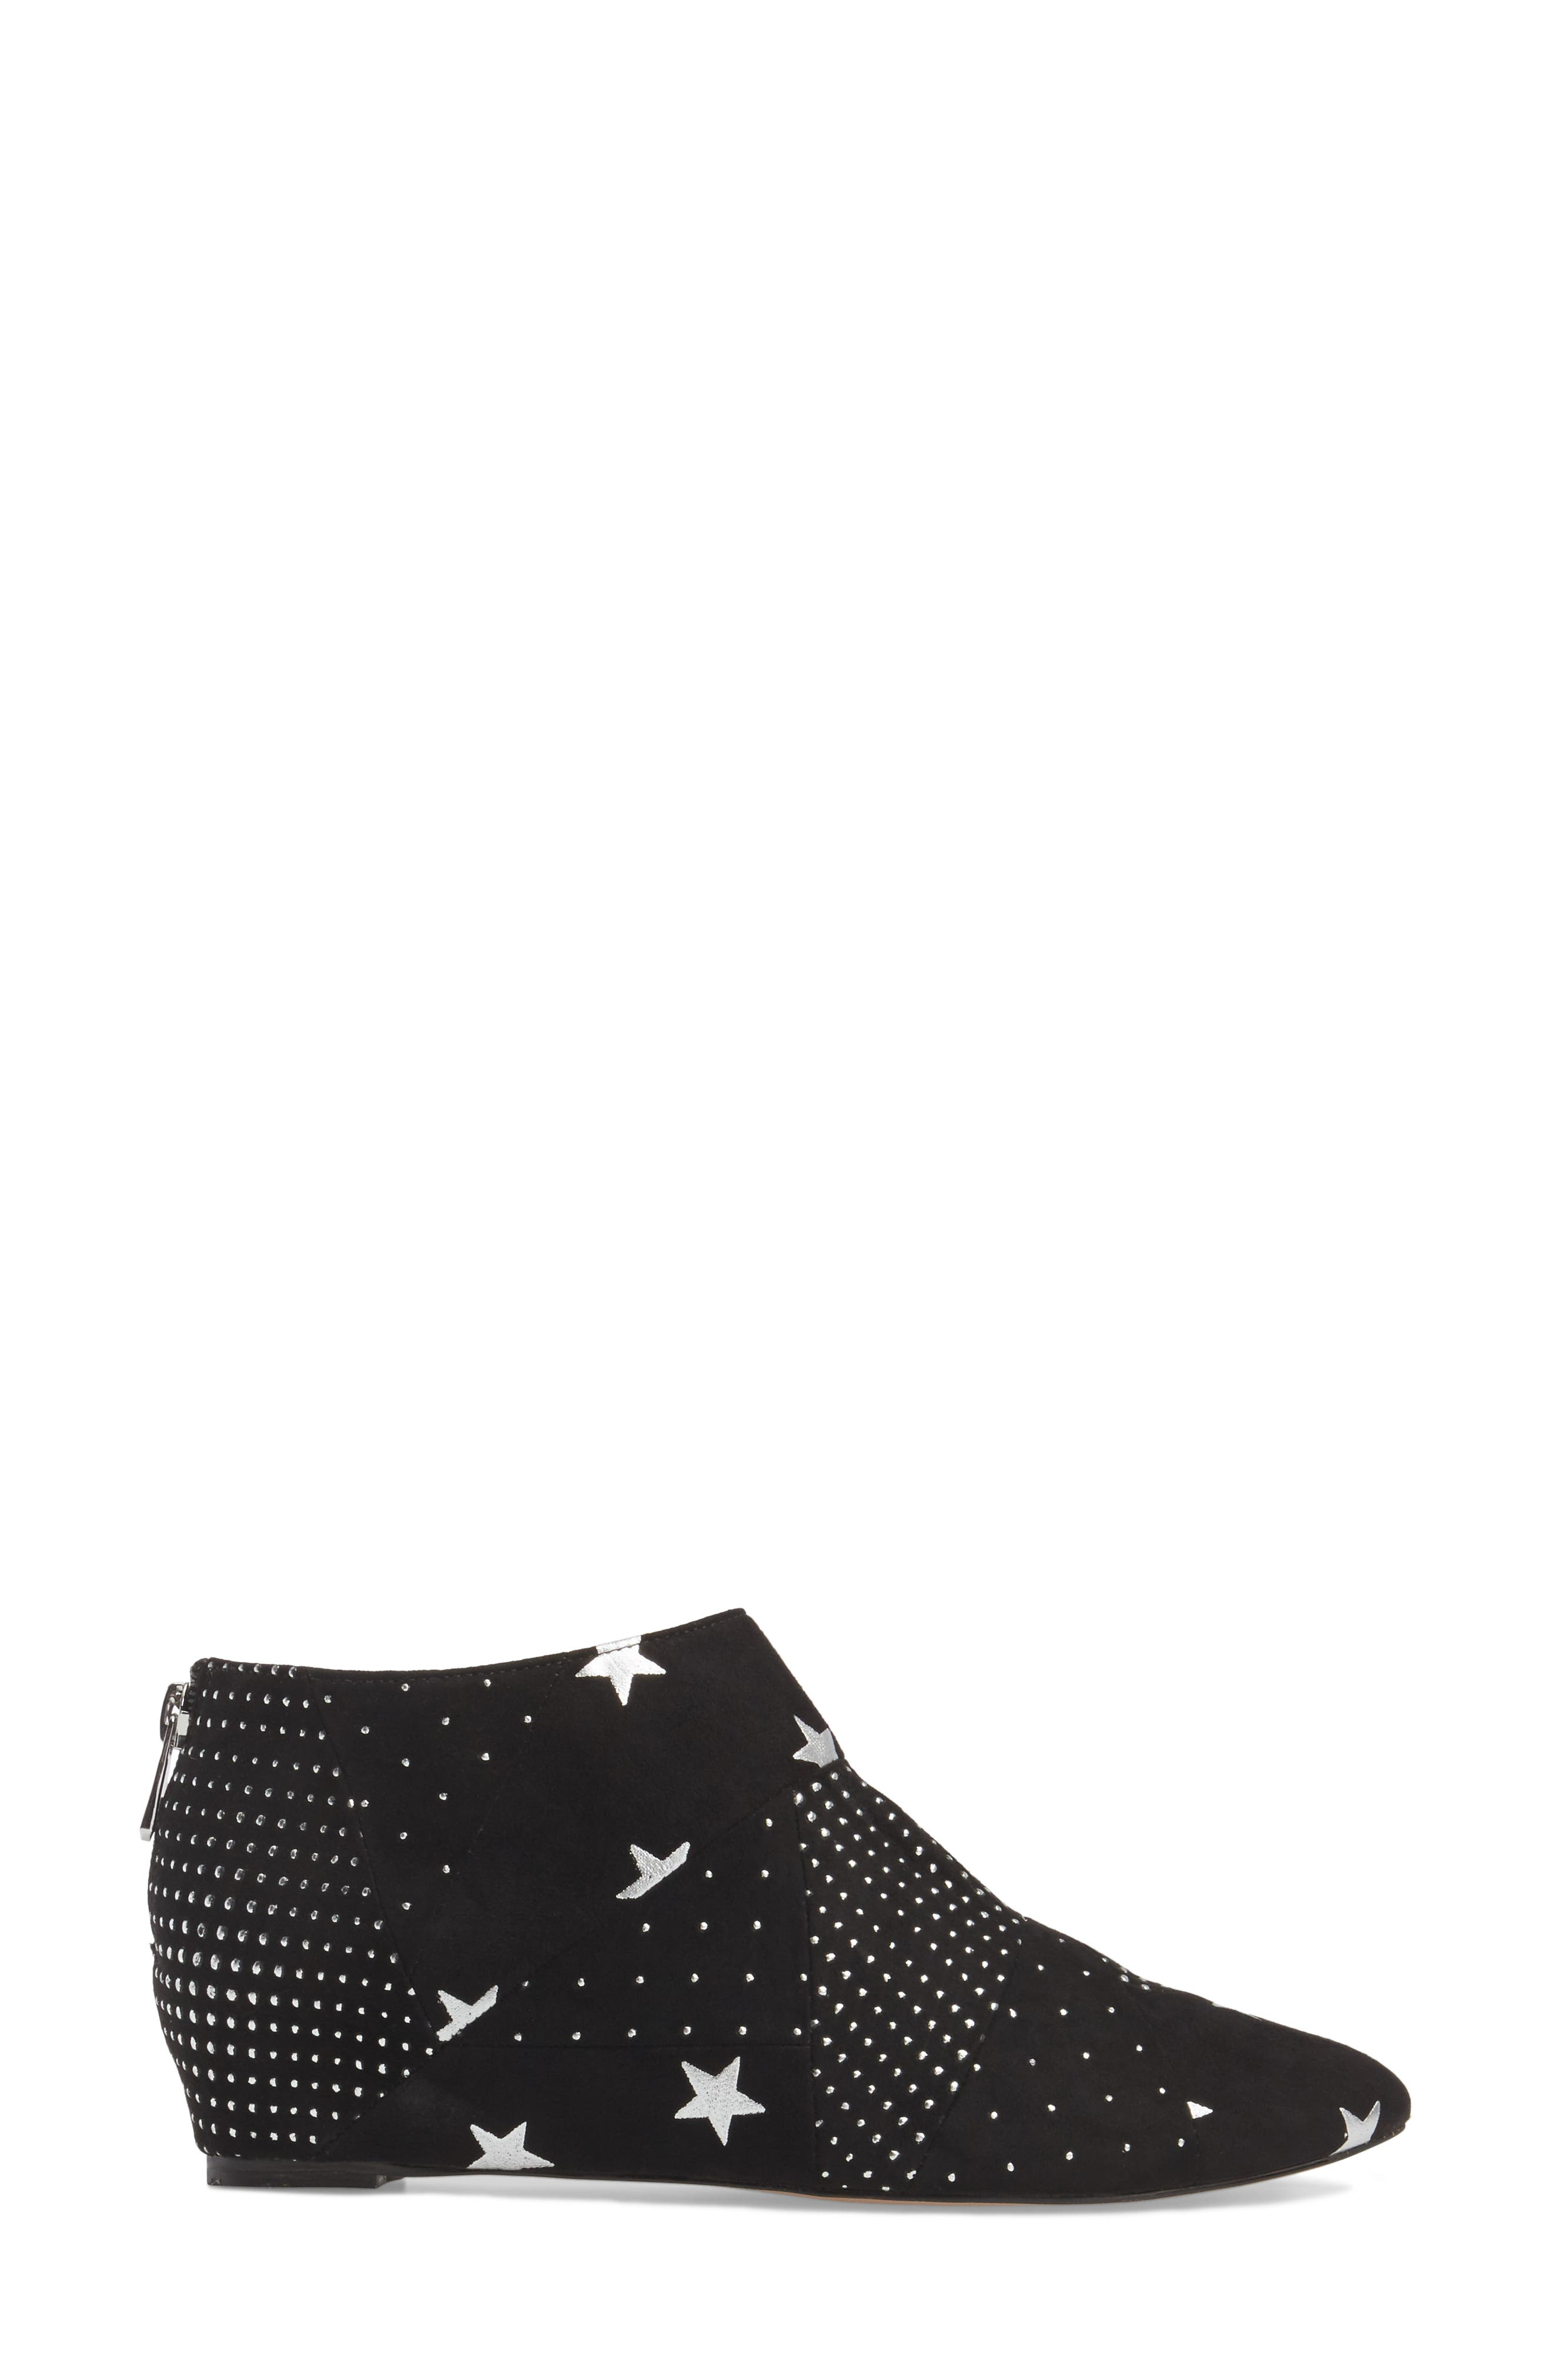 Aves Les Filles Beatrice Ankle Boot,                             Alternate thumbnail 11, color,